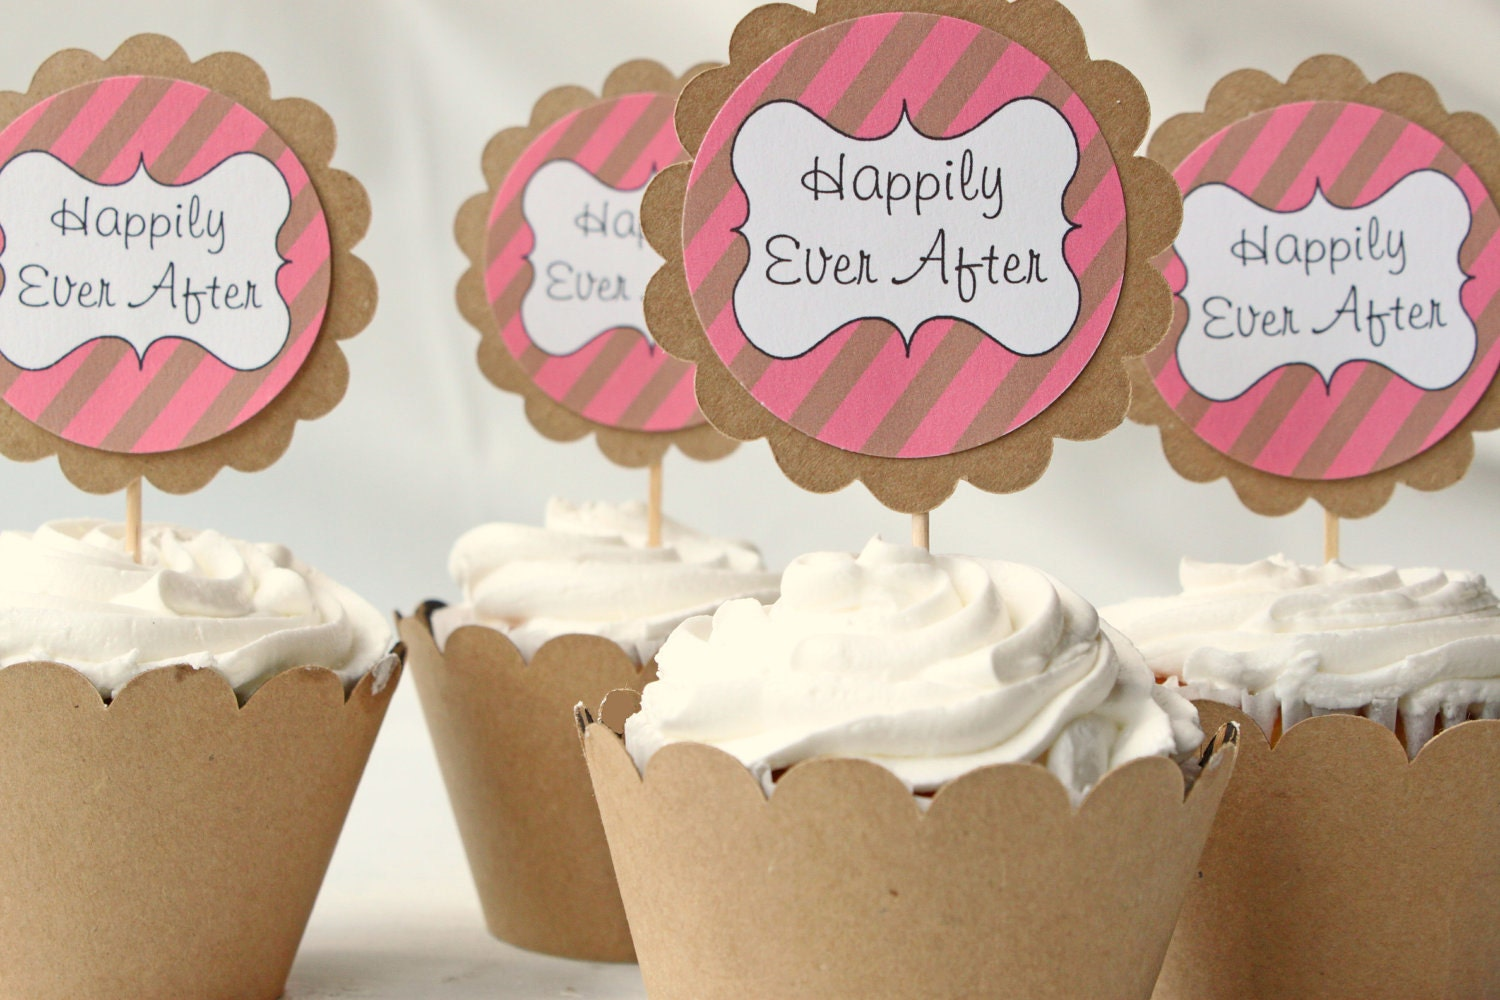 Cupcake Decorating Ideas For Wedding Showers : Wedding Cake Toppers! on Pinterest 62 Pins